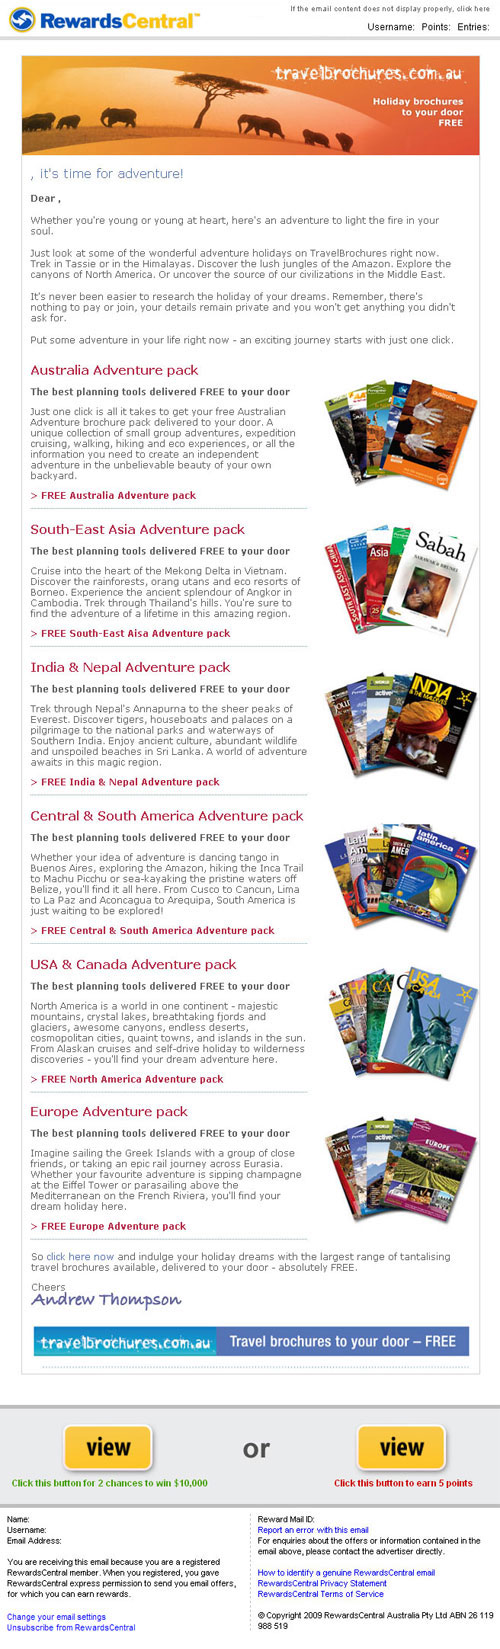 Travel Brochures - Clients - Why PermissionCorp